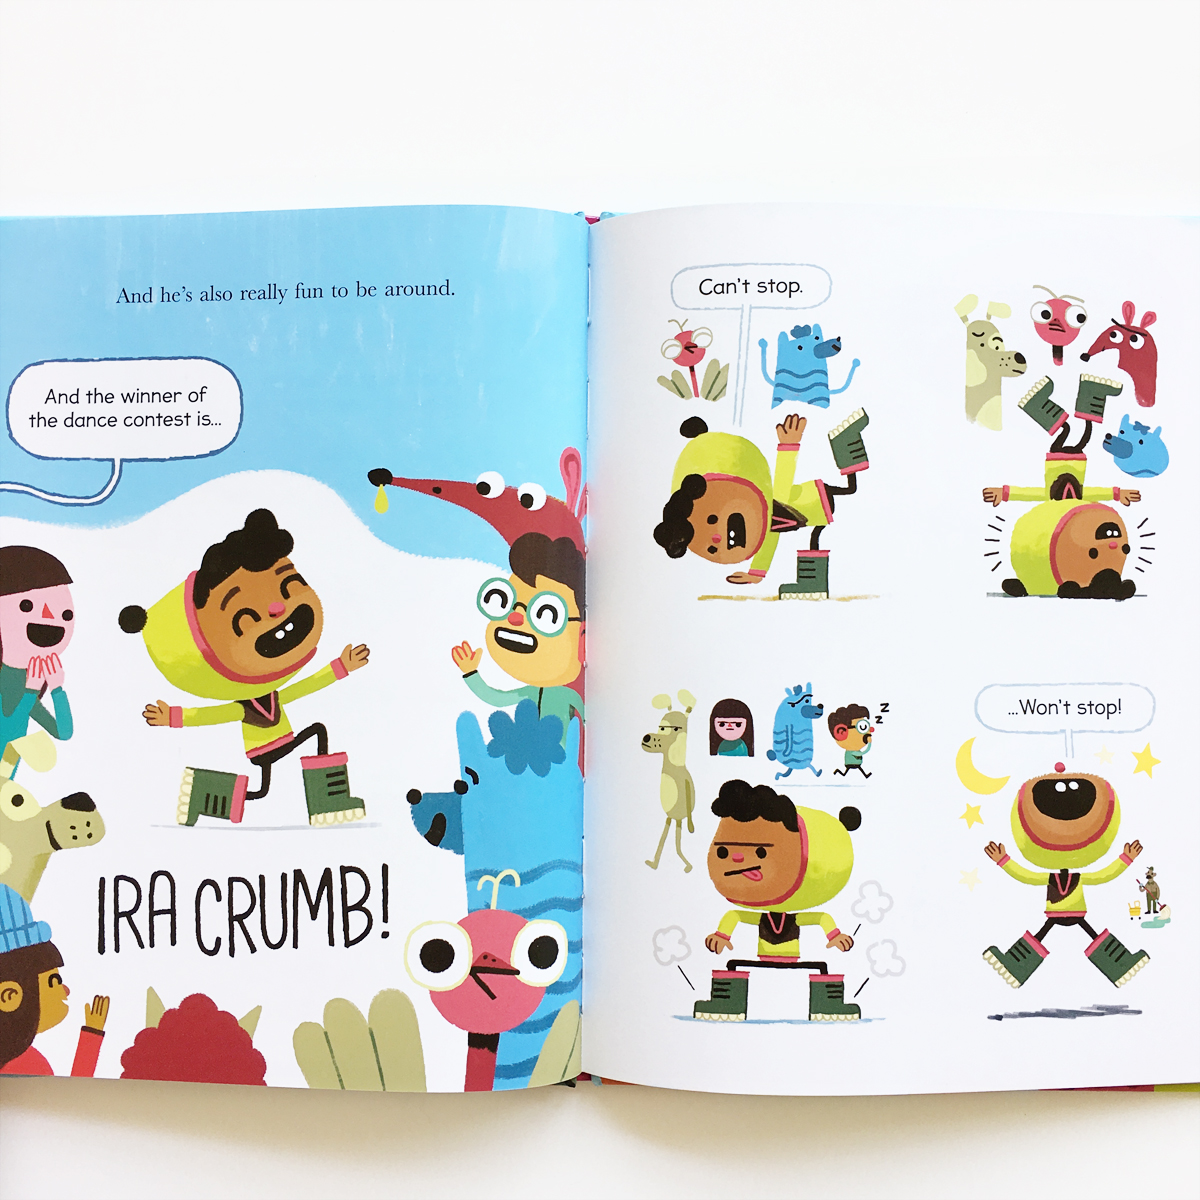 Ira Crumb Makes a Pretty Good Friend | Books For Diversity